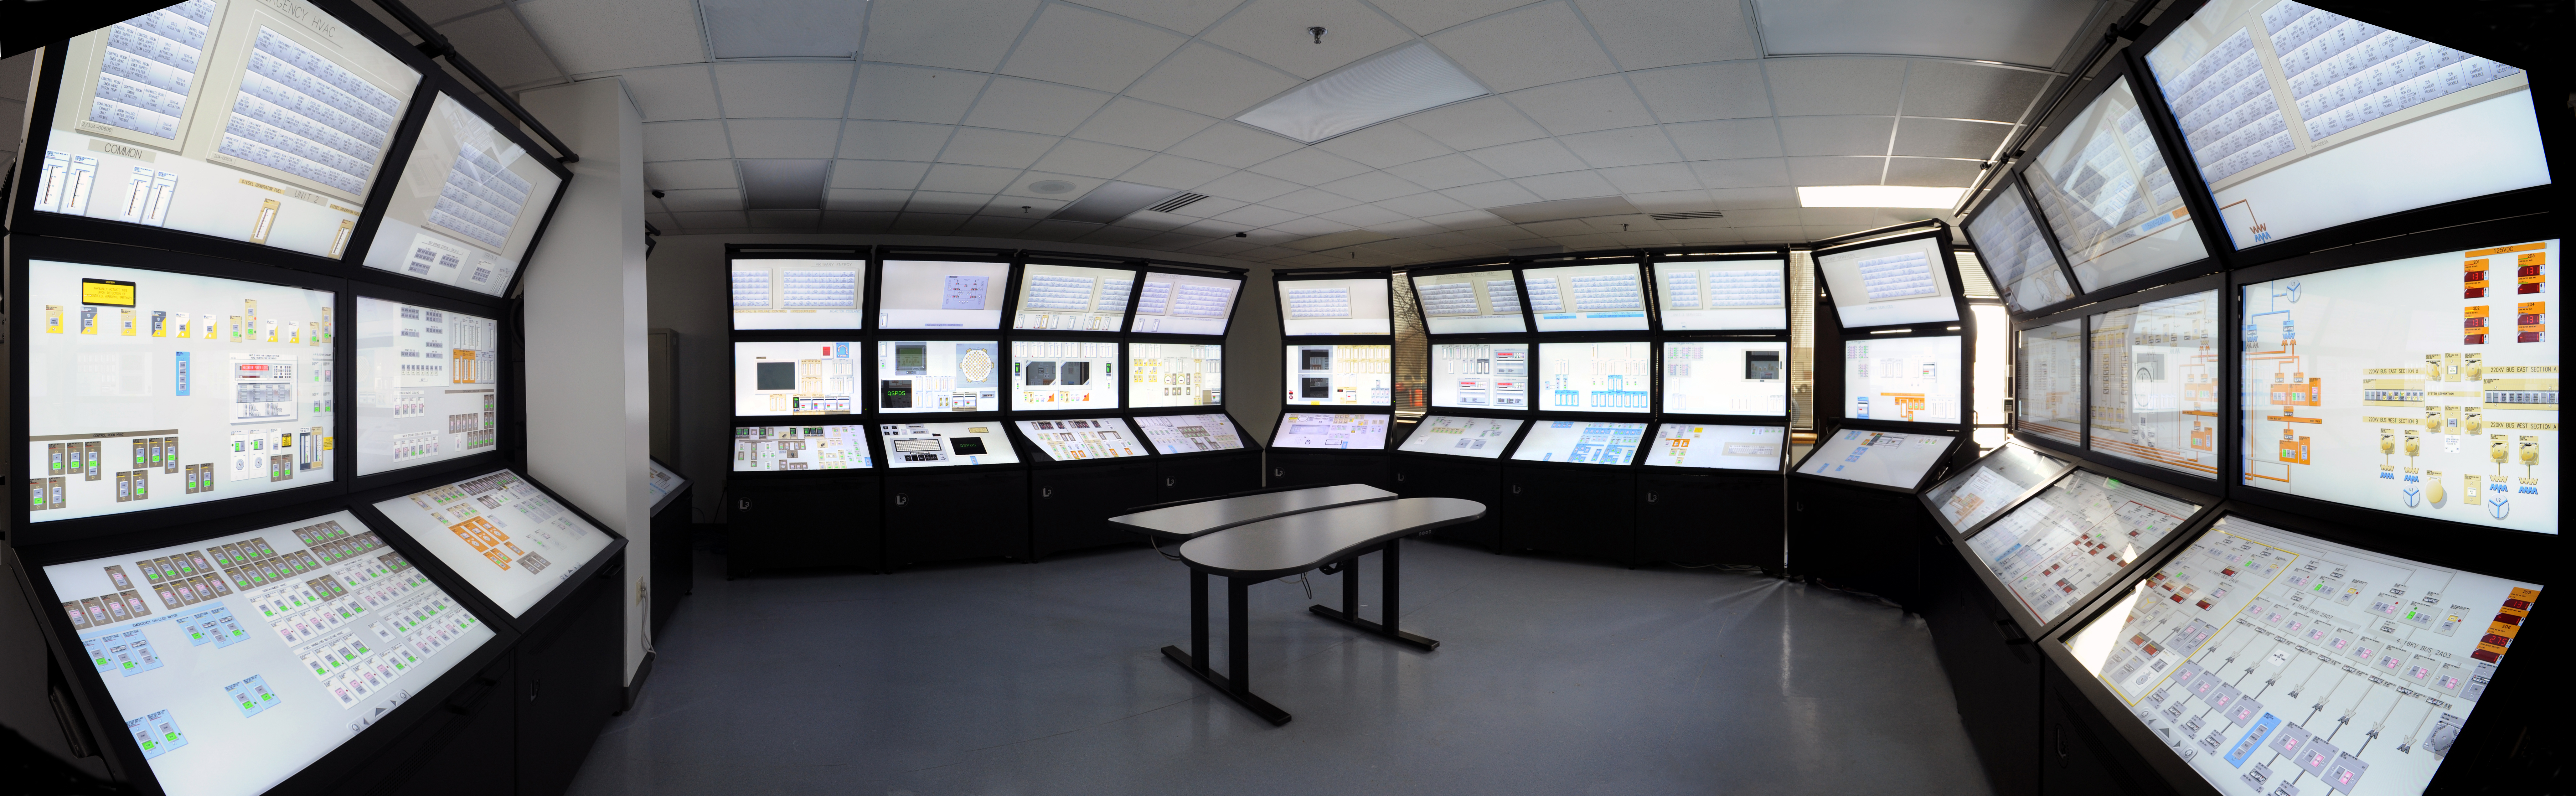 Virtual Control Room Helps Nuclear Operators Industry